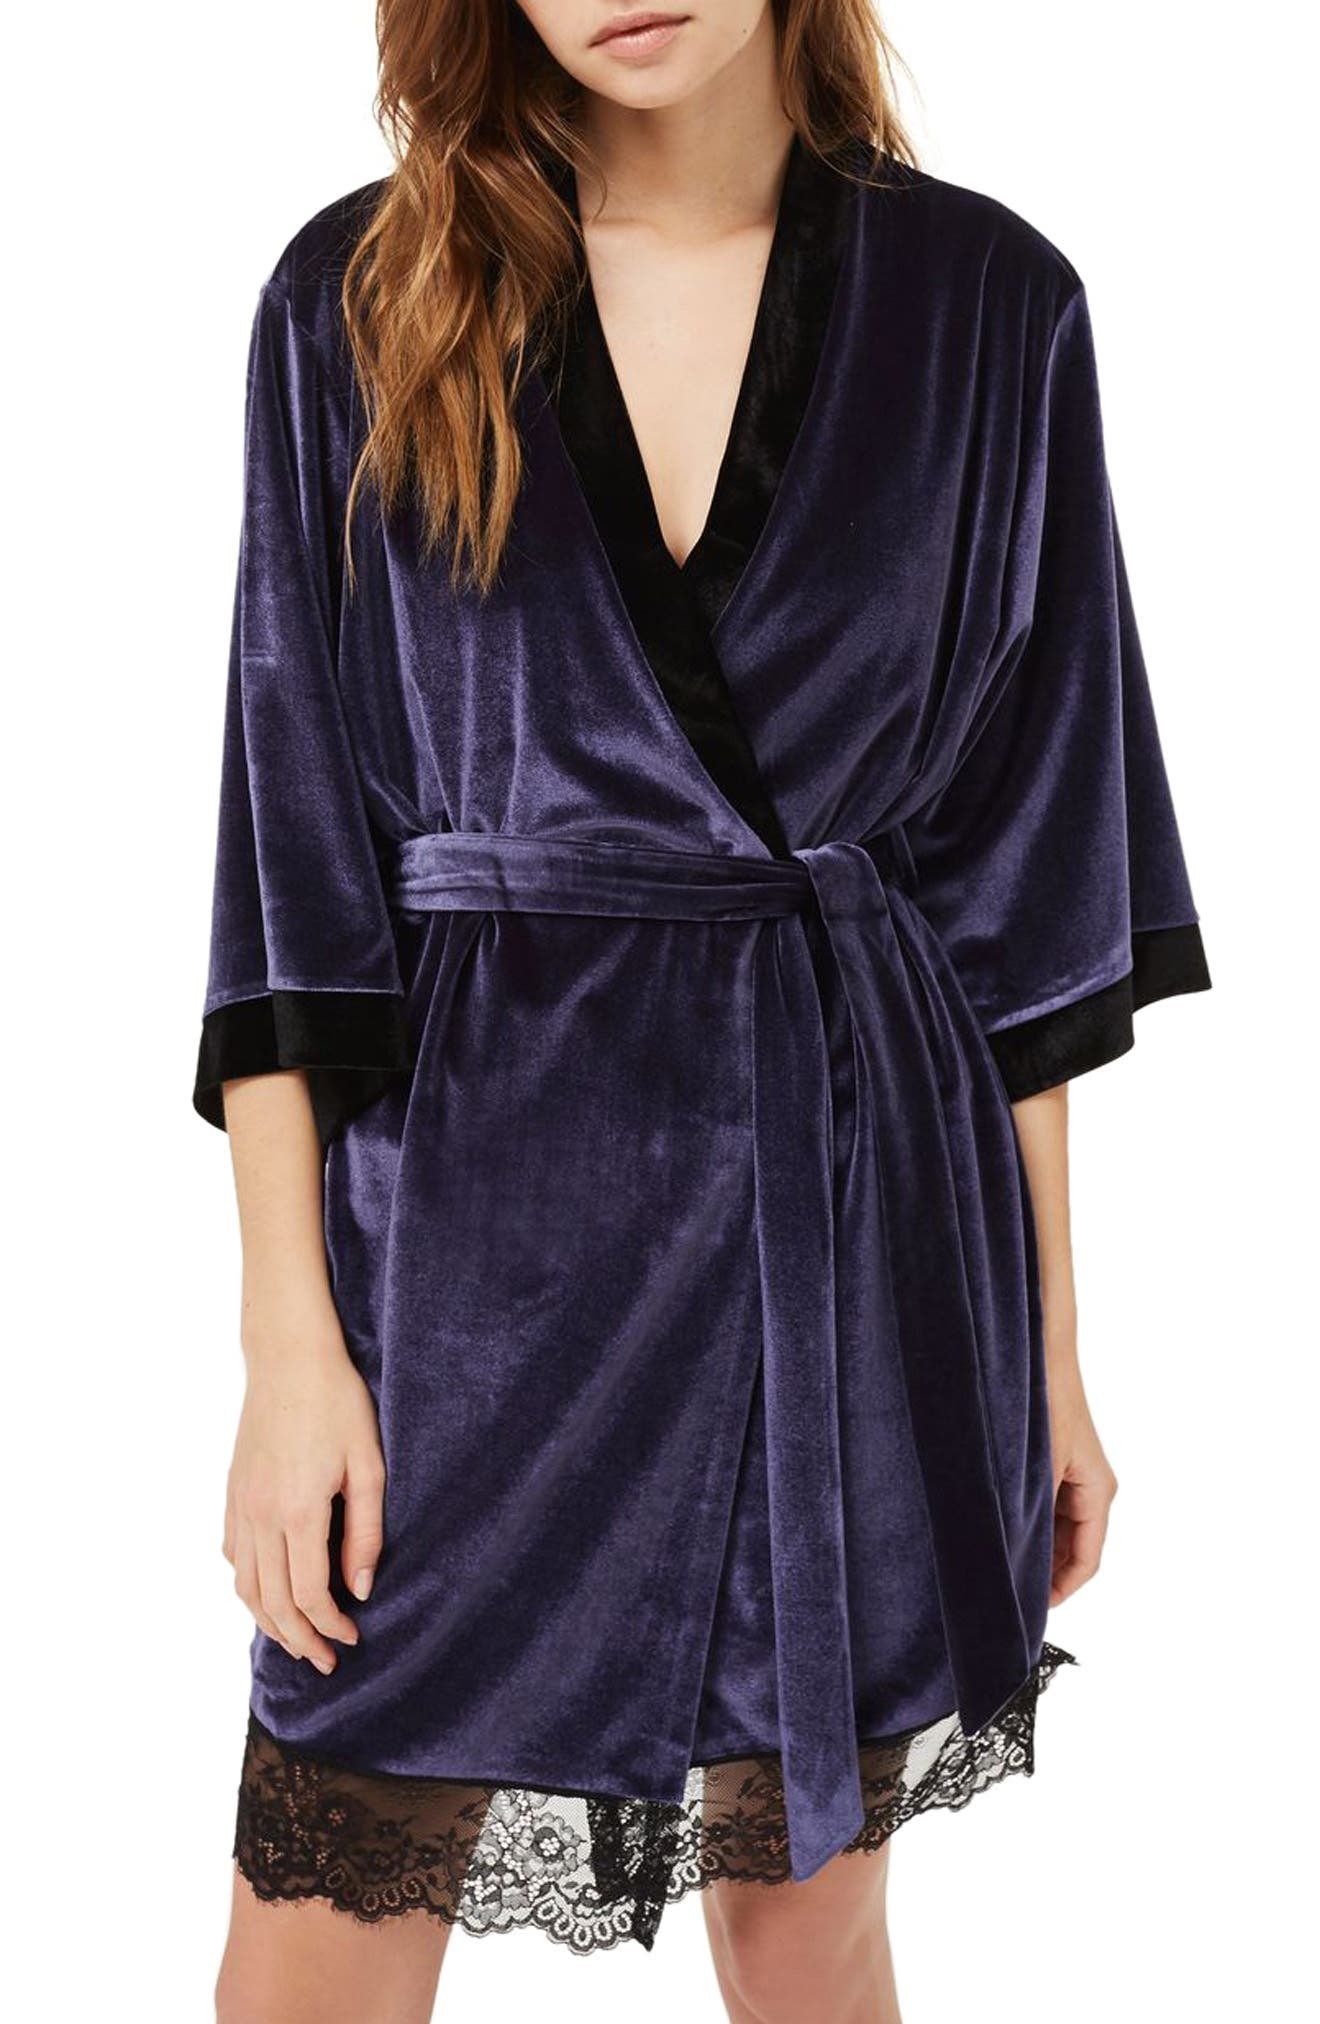 Topshop Nocturne Lace and Velvet Robe